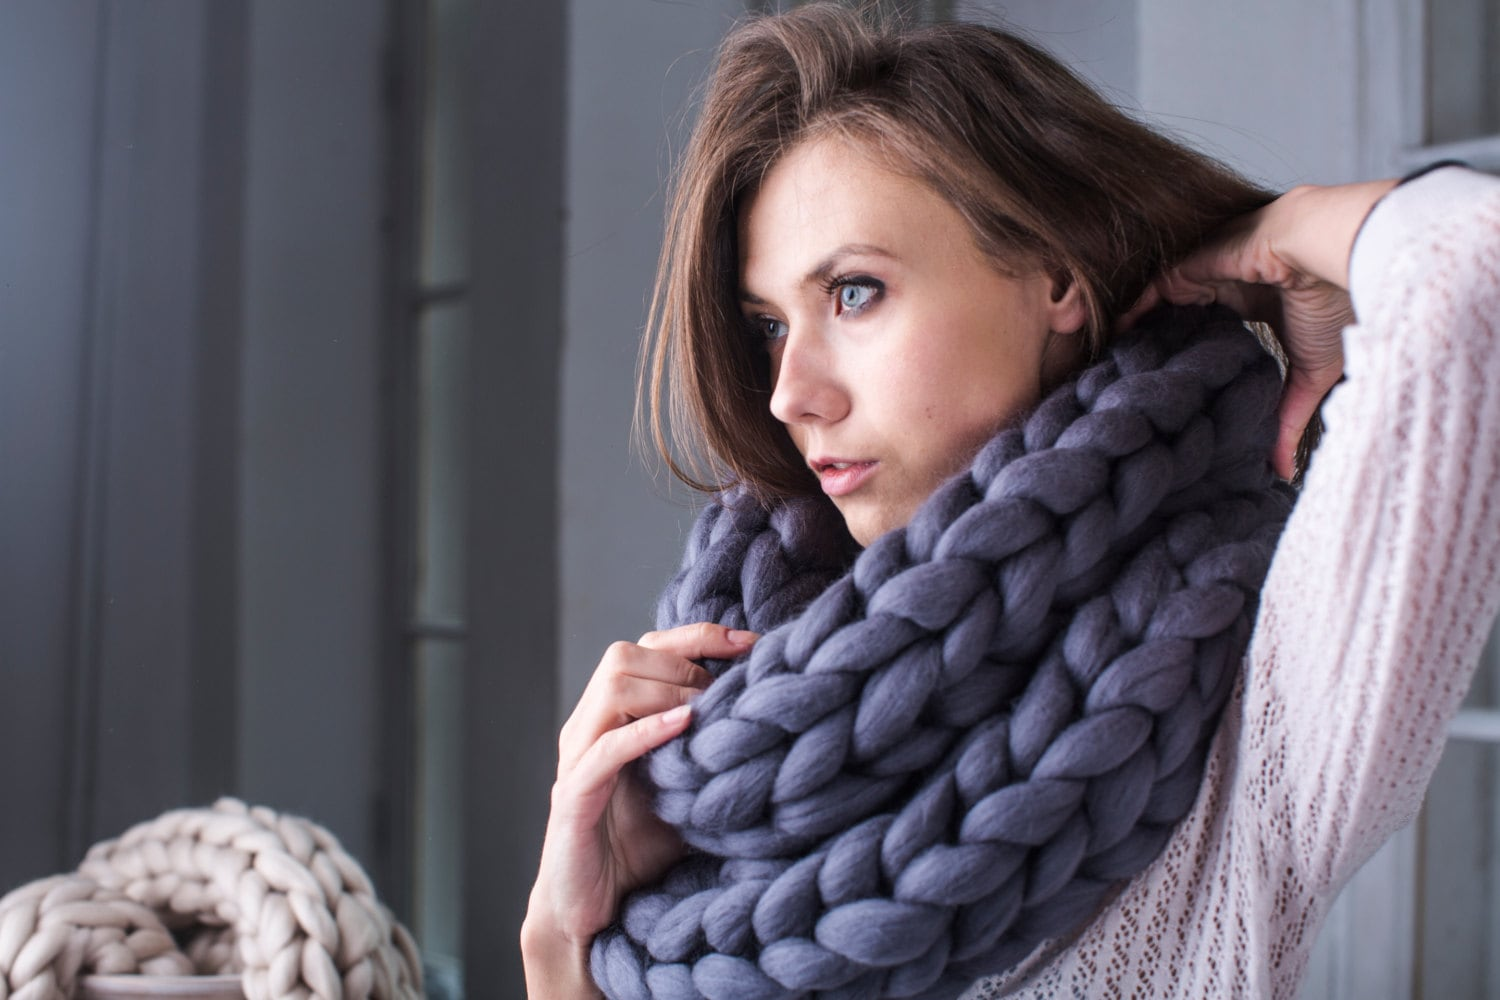 Knitting Patterns For Big Scarves : Super Chunky infinity scarf knit scarf Super bulky scarf